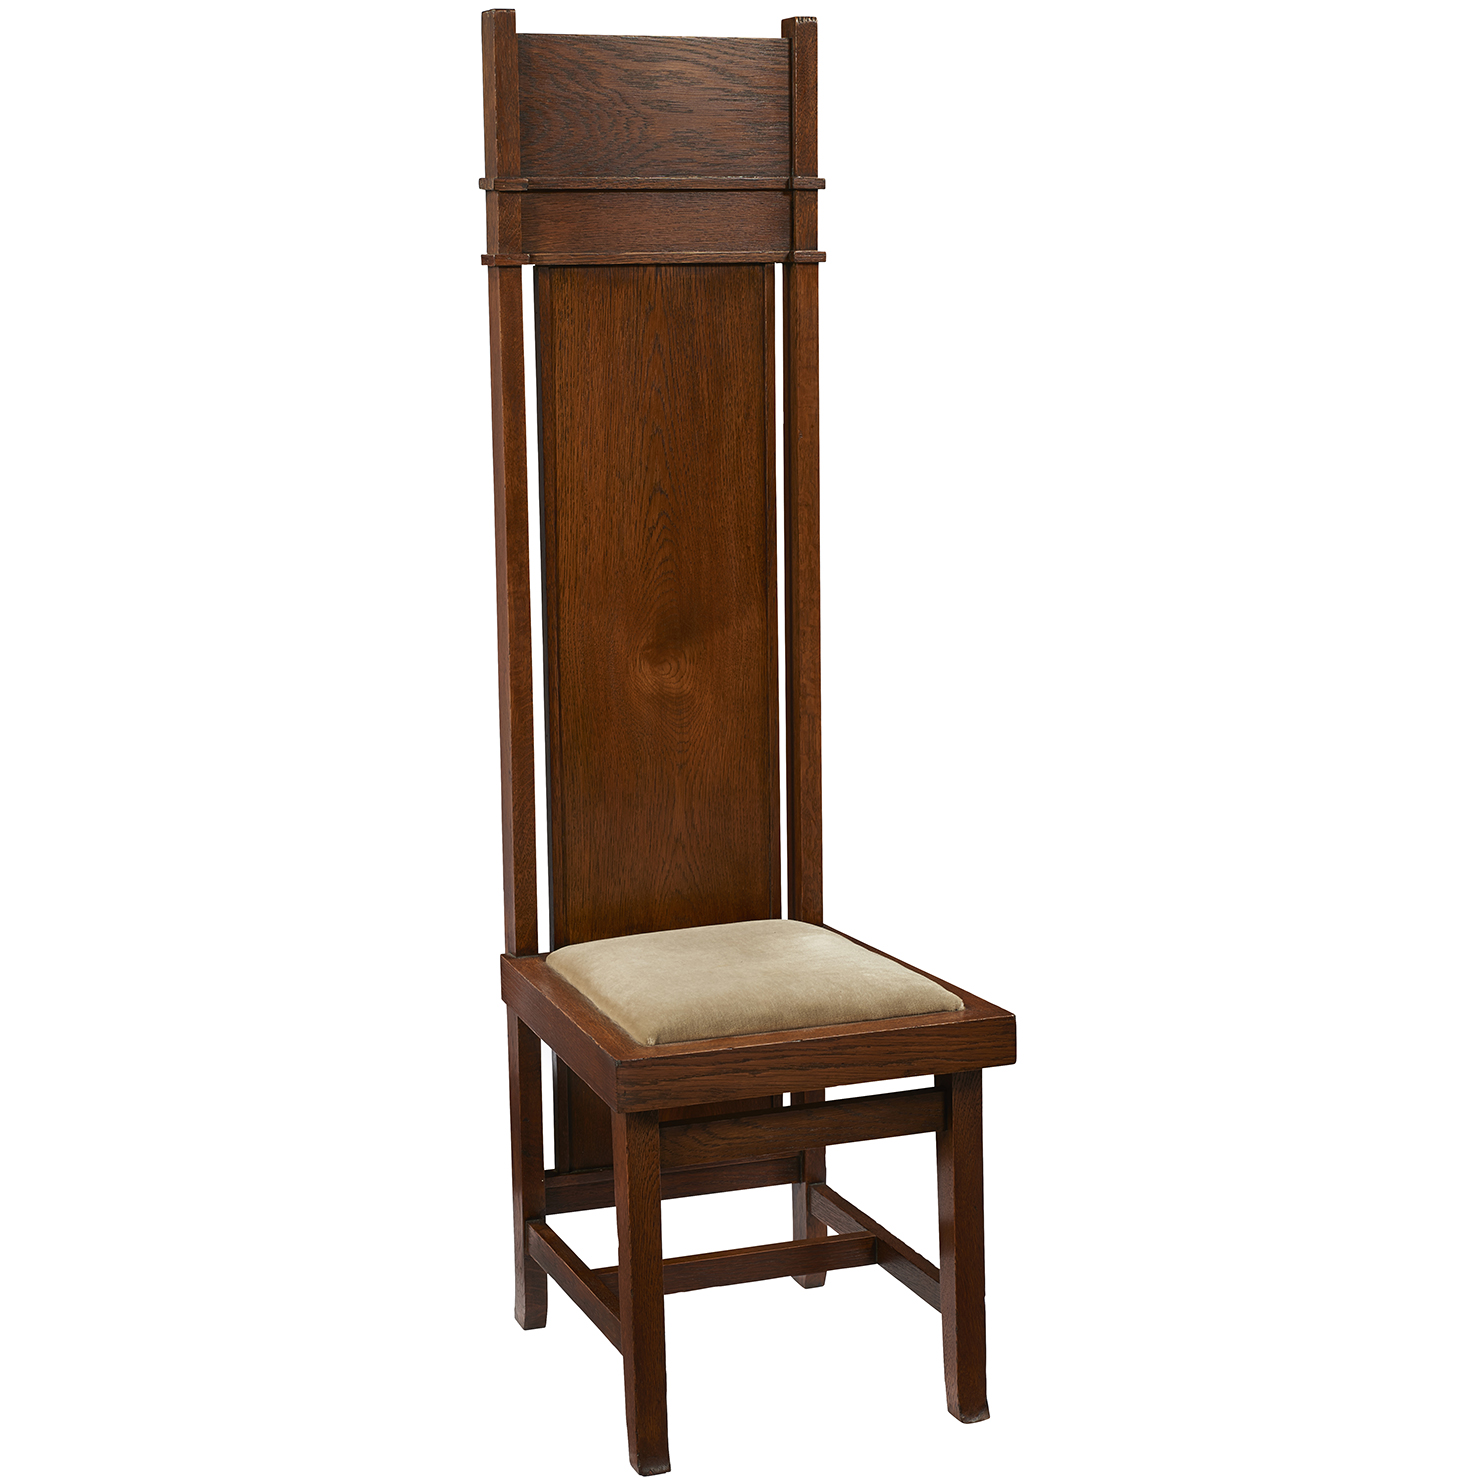 Frank Lloyd Wright High-Back Chair